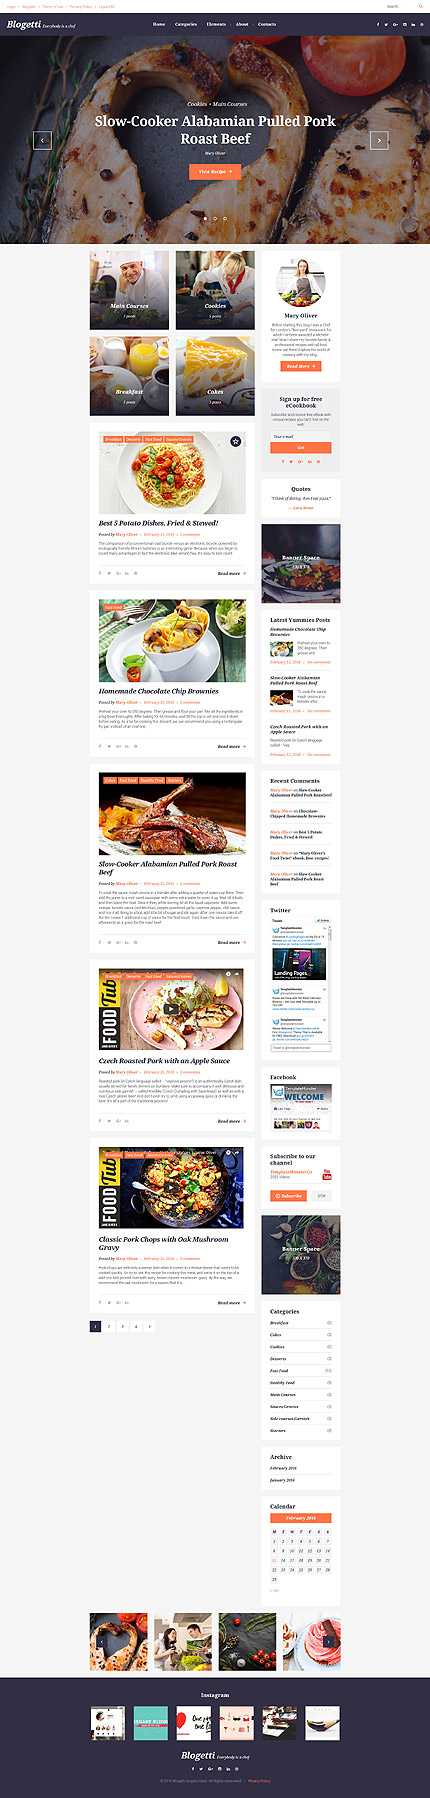 Cafe and Restaurant Most Popular website inspirations at your coffee break? Browse for more WordPress #templates! // Regular price: $45 // Sources available:.PHP, This theme is widgetized #Cafe and Restaurant #Most Popular #WordPress